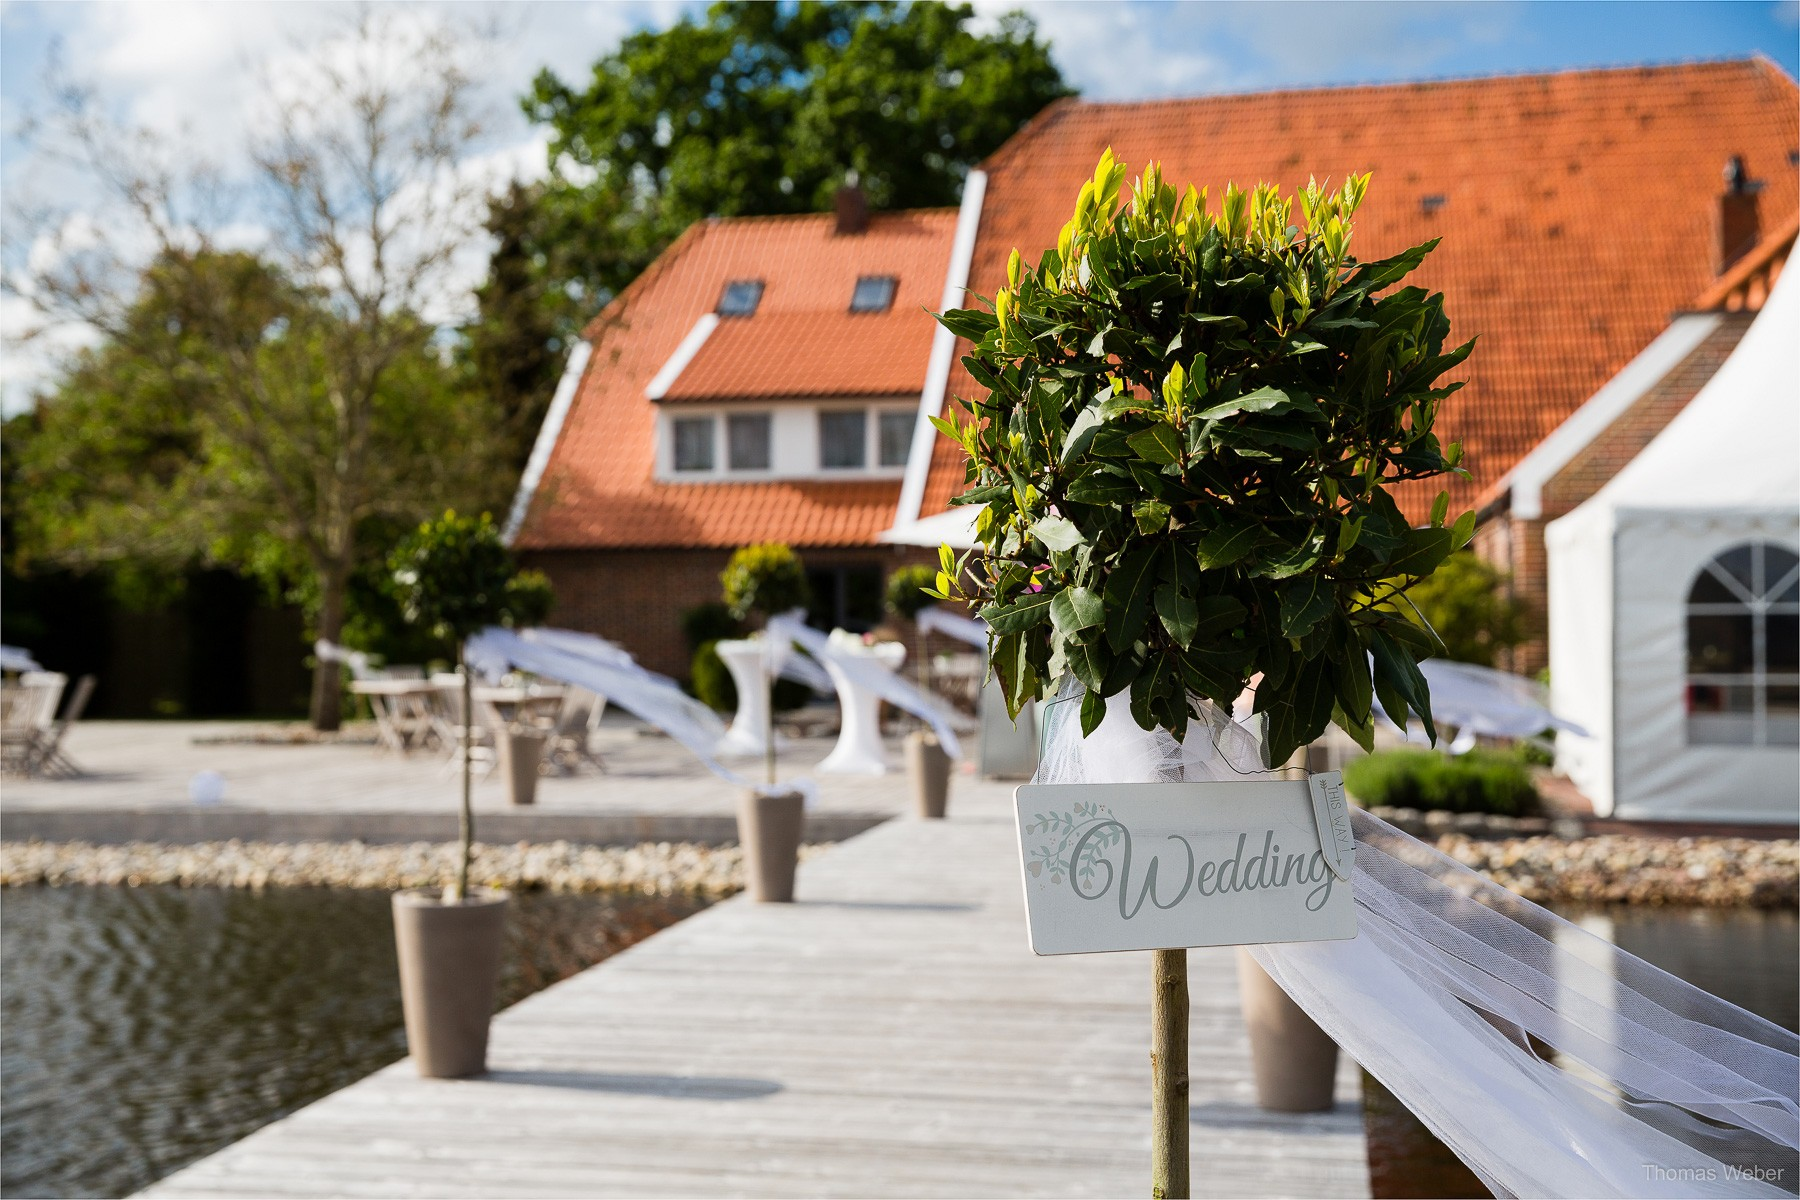 Hochzeit in Oldenburg, Fotograf Thomas Weber aus Oldenburg